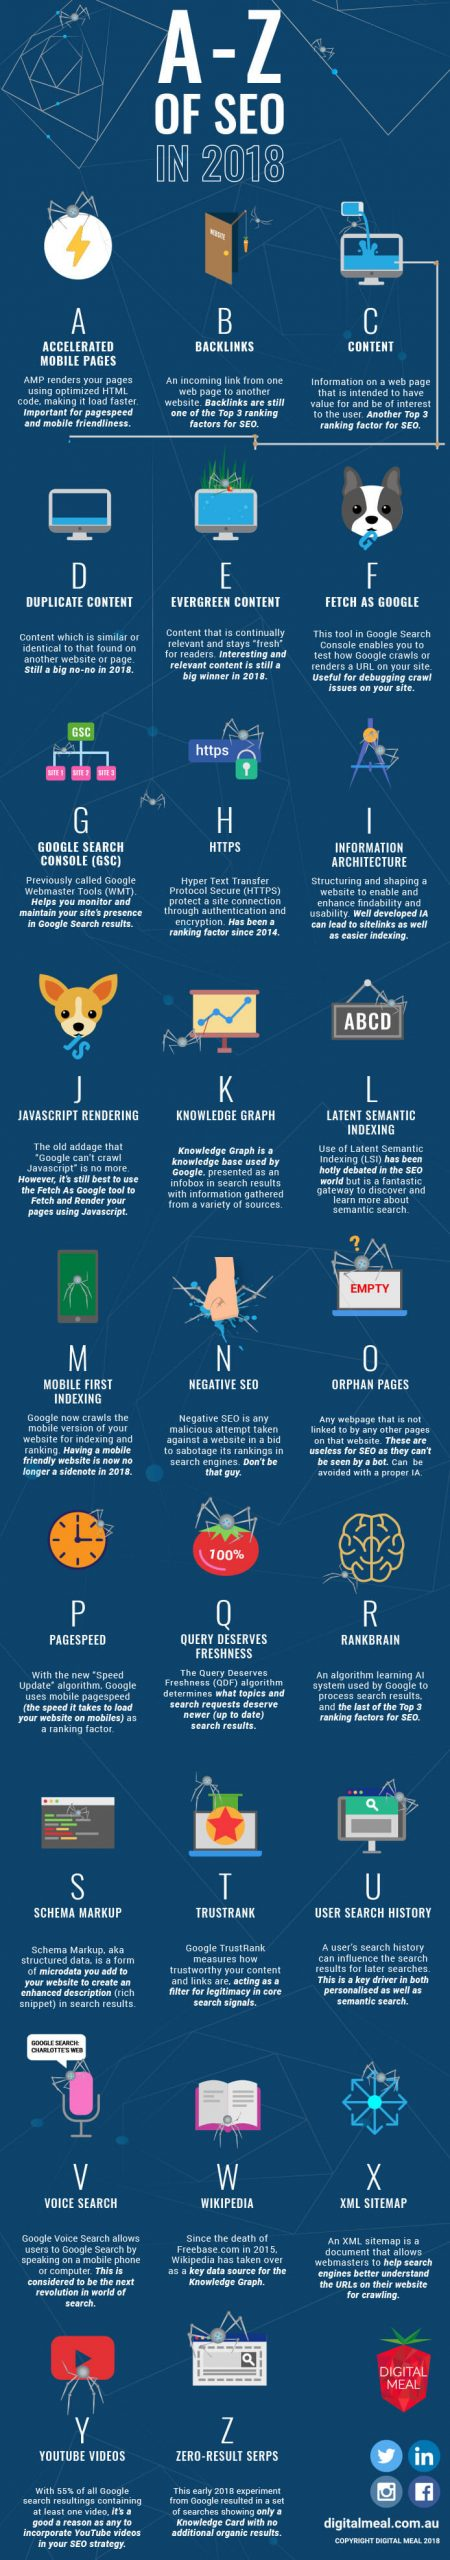 A to Z SEO Infographic compressed